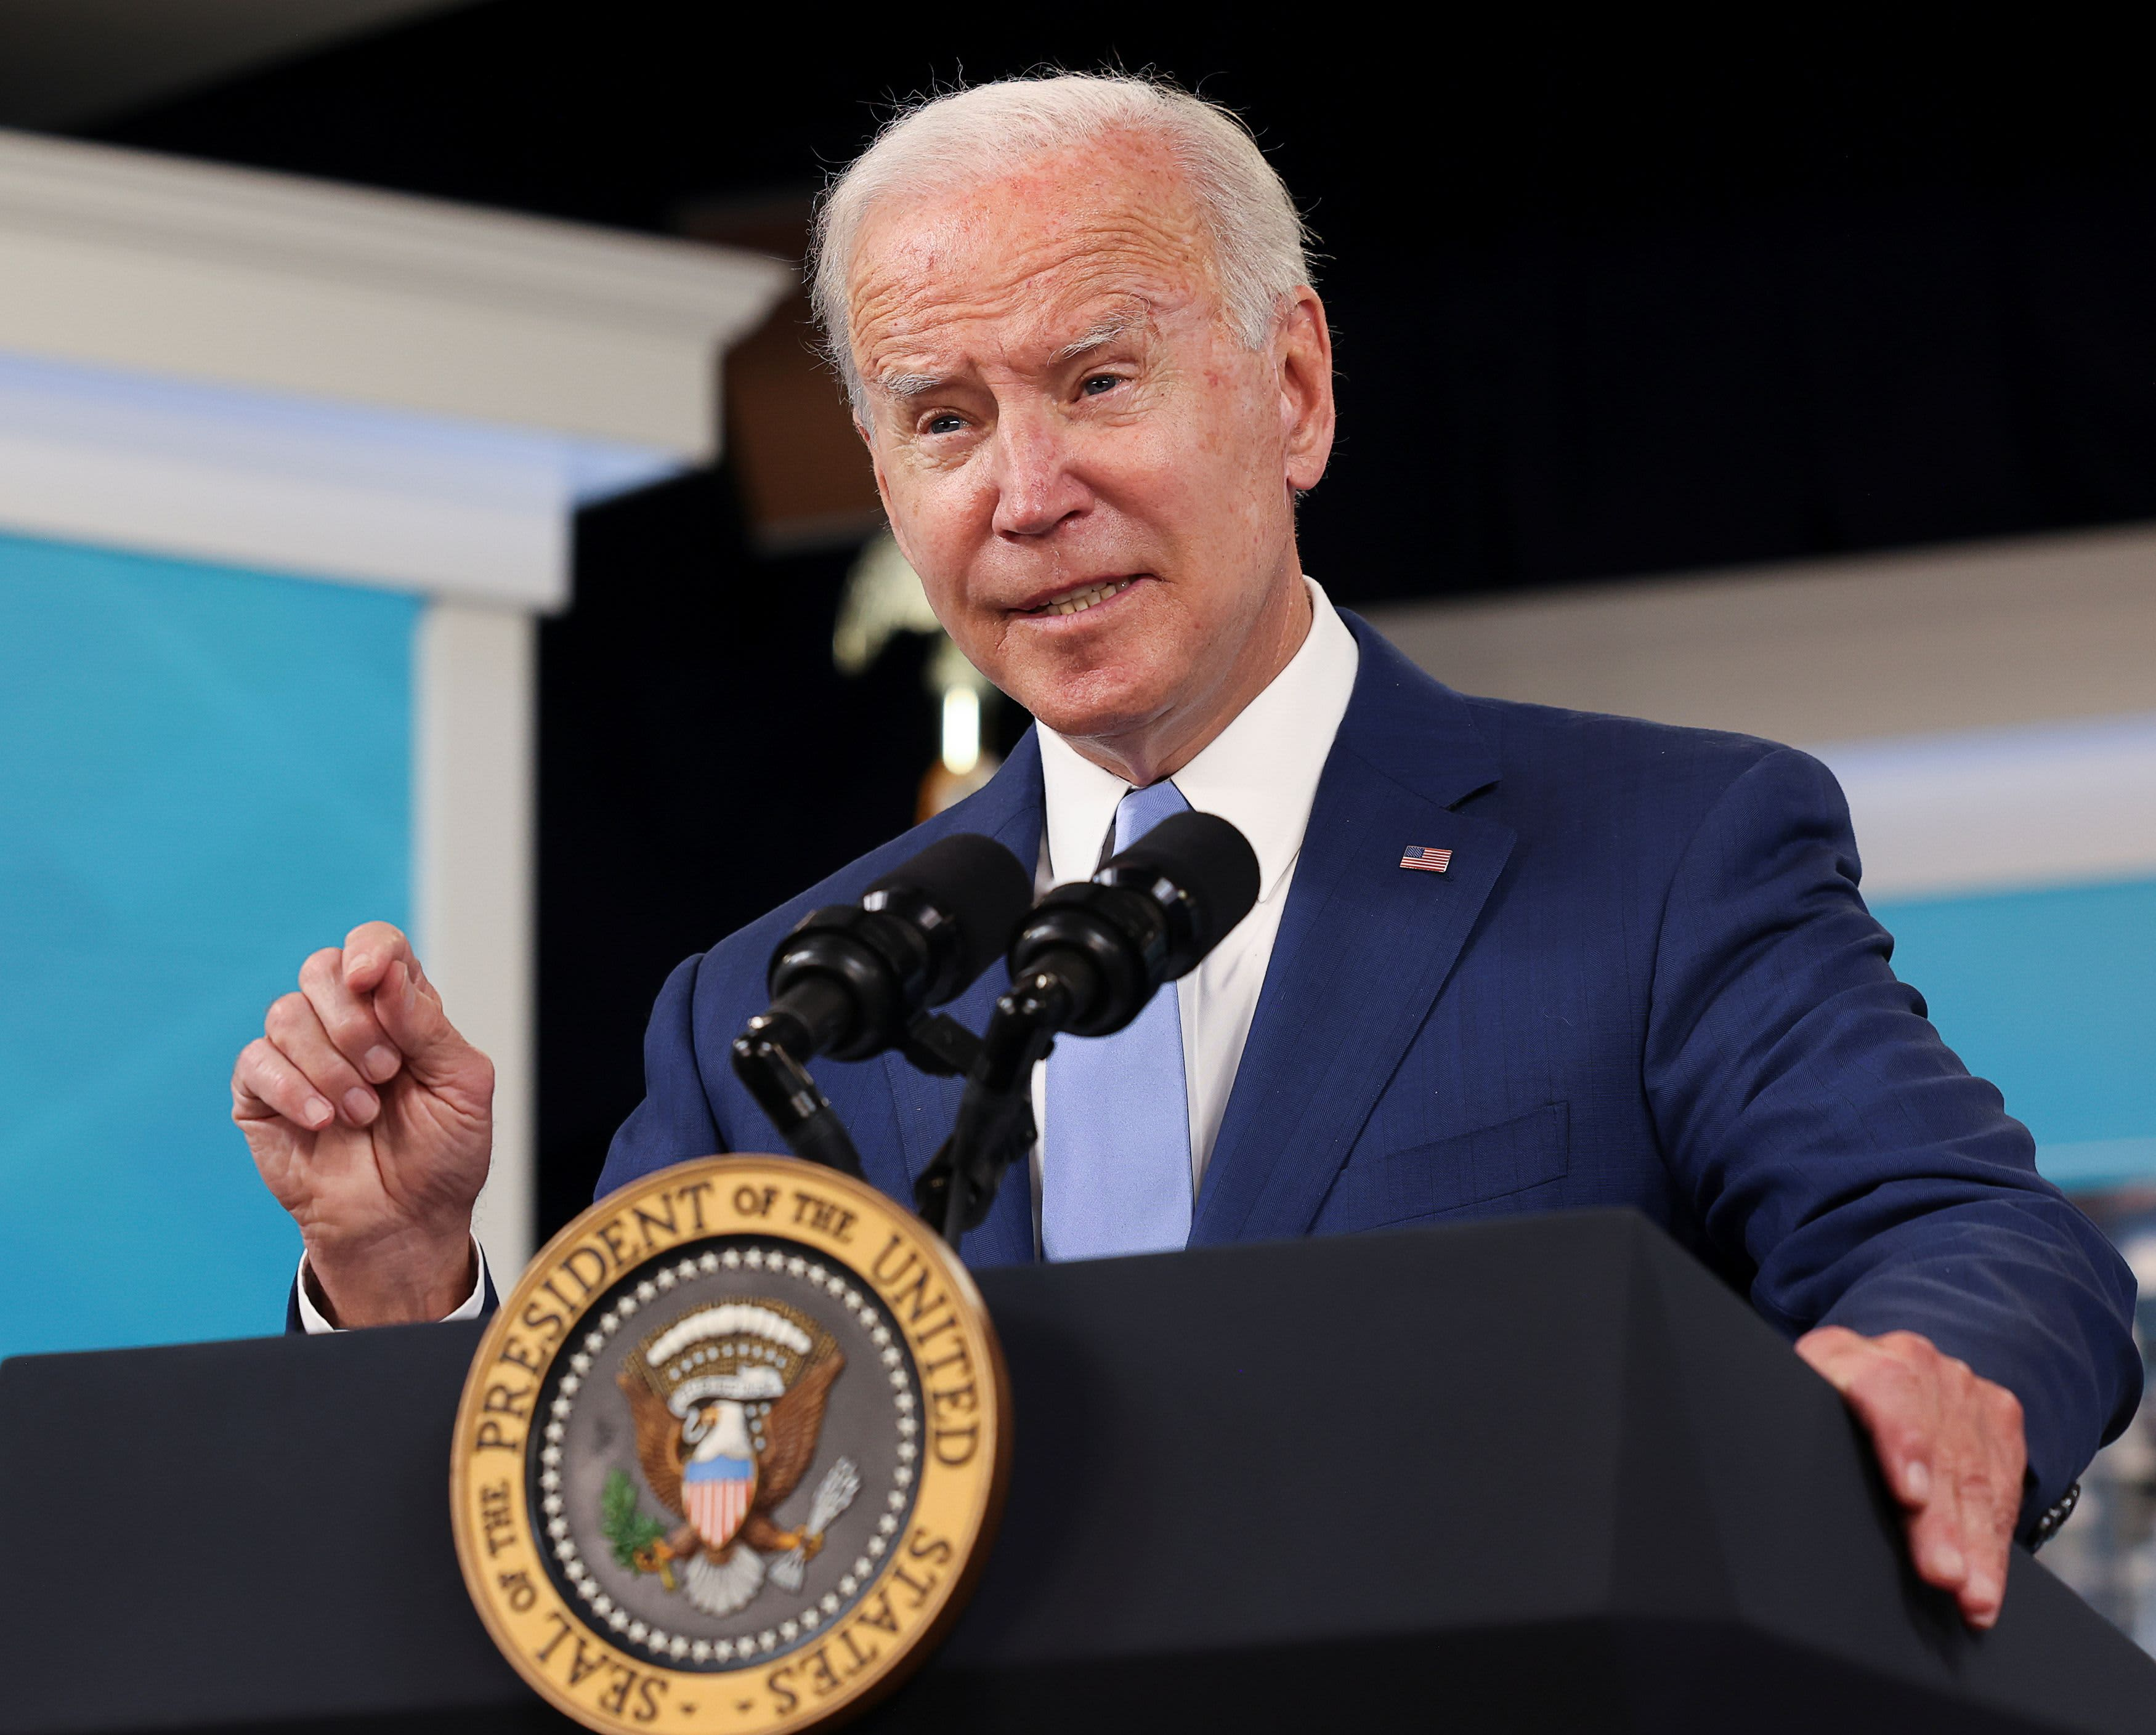 The September jobs number was a big miss, but Biden sees 'great progress' in rising wages, lower unemployment rate